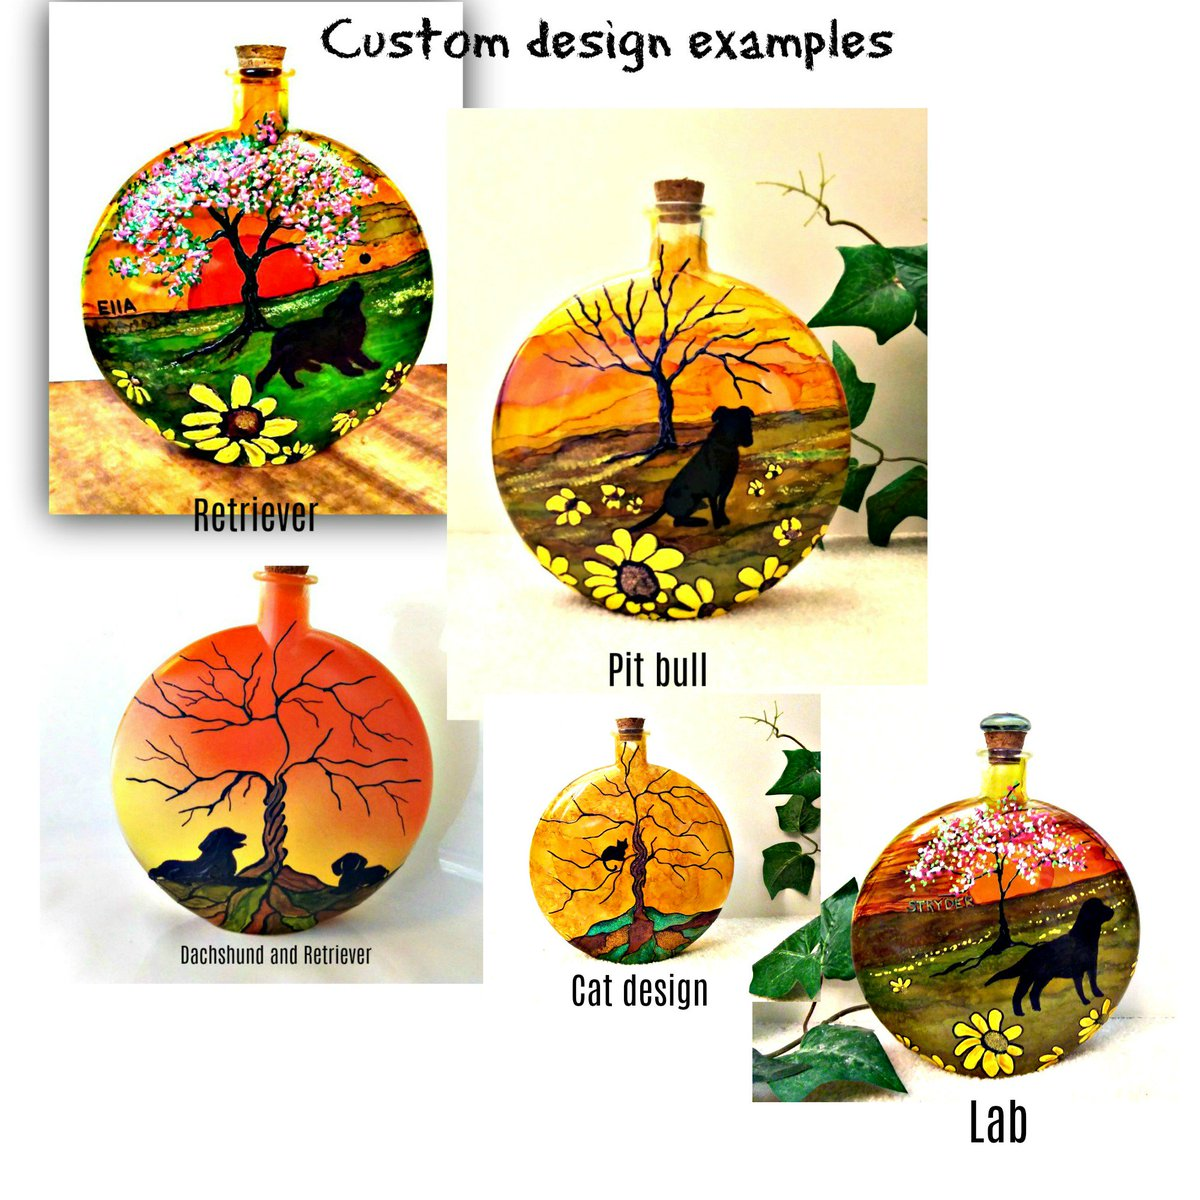 here are some examples of my pet urn designs. Find these and more designs in my etsy shop!  https://www. etsy.com/shop/DawnsINKS pirations &nbsp; …  #dogs #cats #pets #animal #animallover #animallovers #doglovers #DogLove #etsy #LoveATreeDay #TreeofLife #loved #EtsySeller #dawnhawkinsart<br>http://pic.twitter.com/m6dgc85zkm